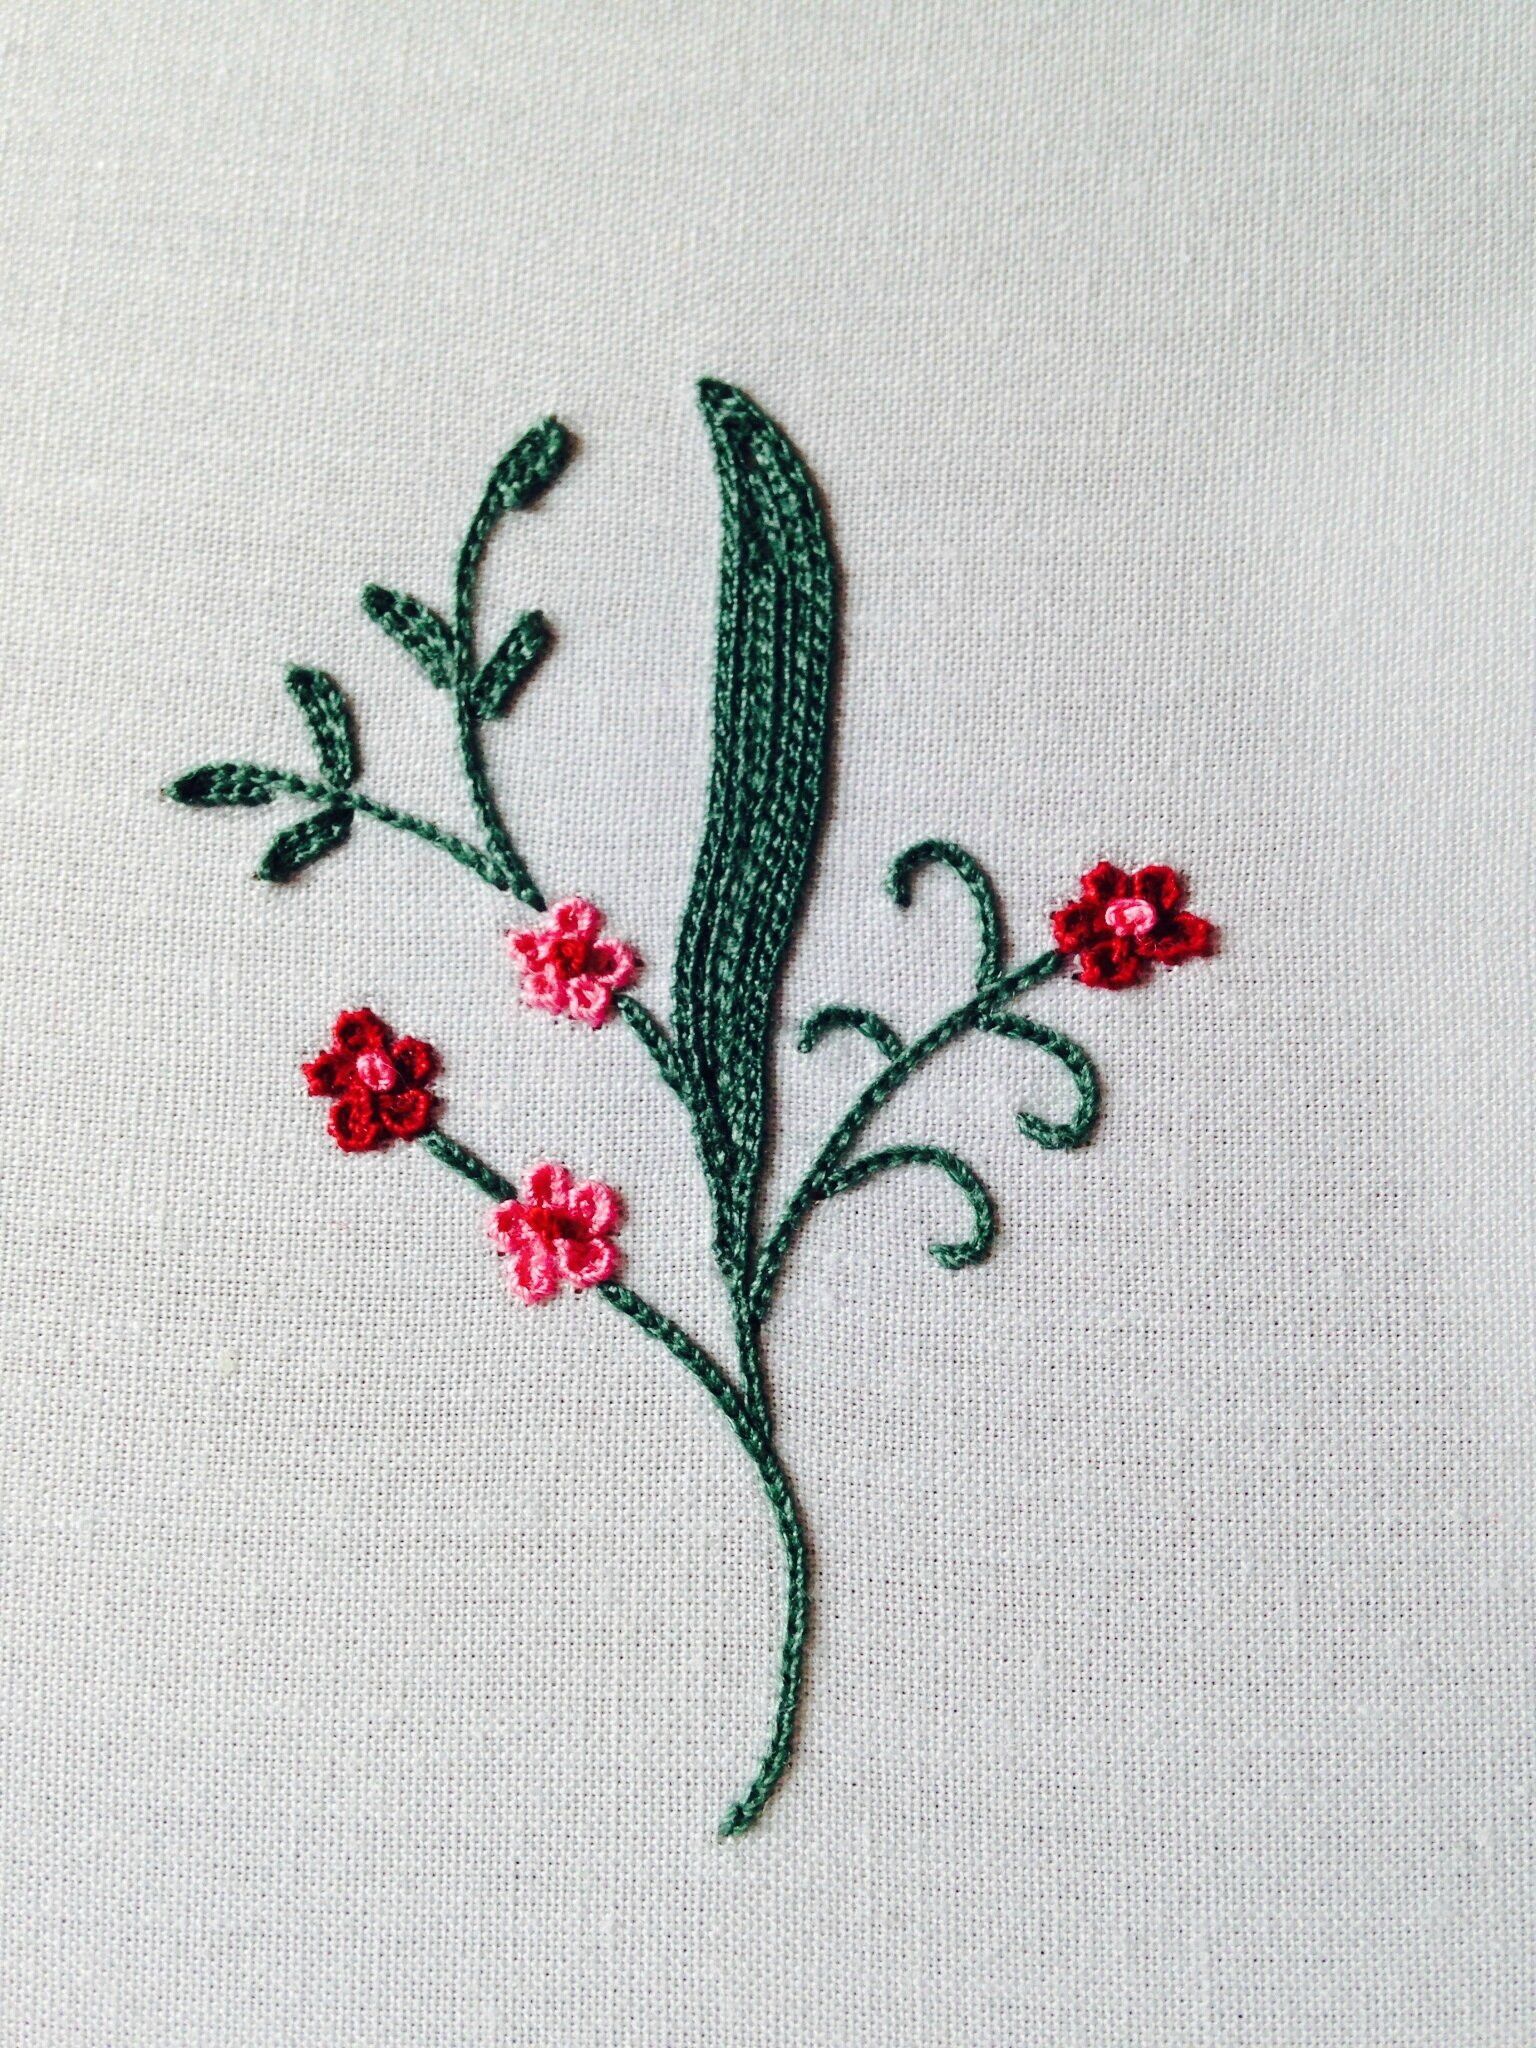 201401 BRODERIE LAURENCE